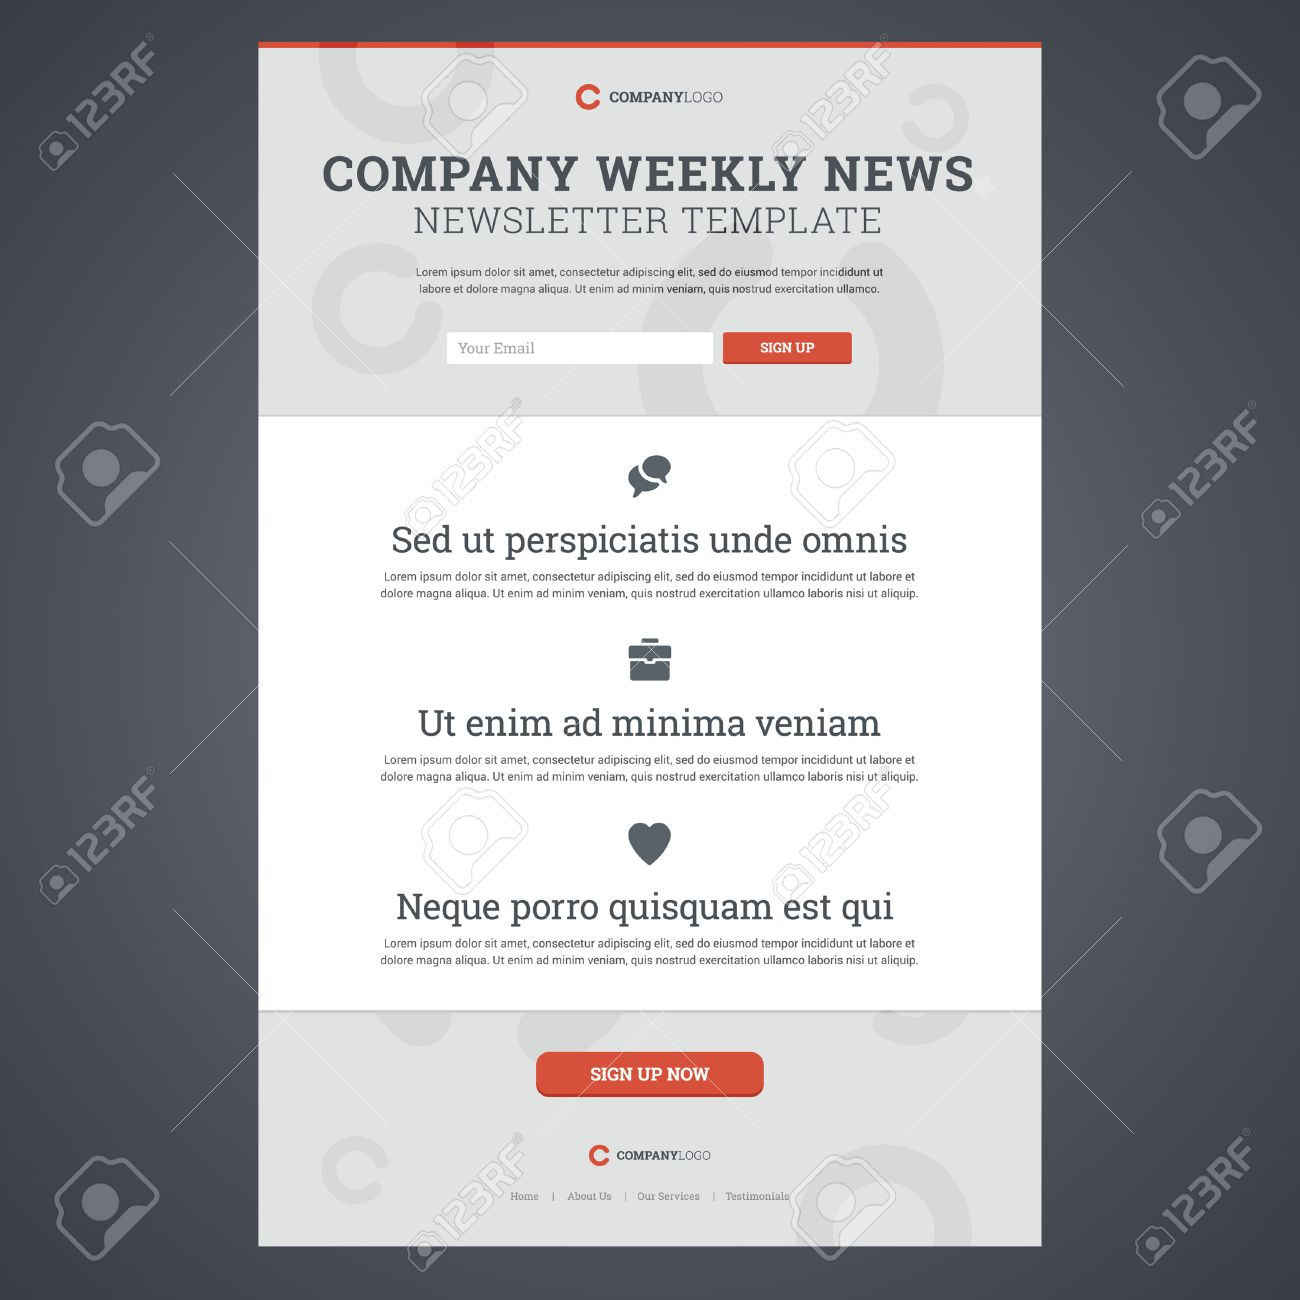 company news newsletter template with sign up form vector